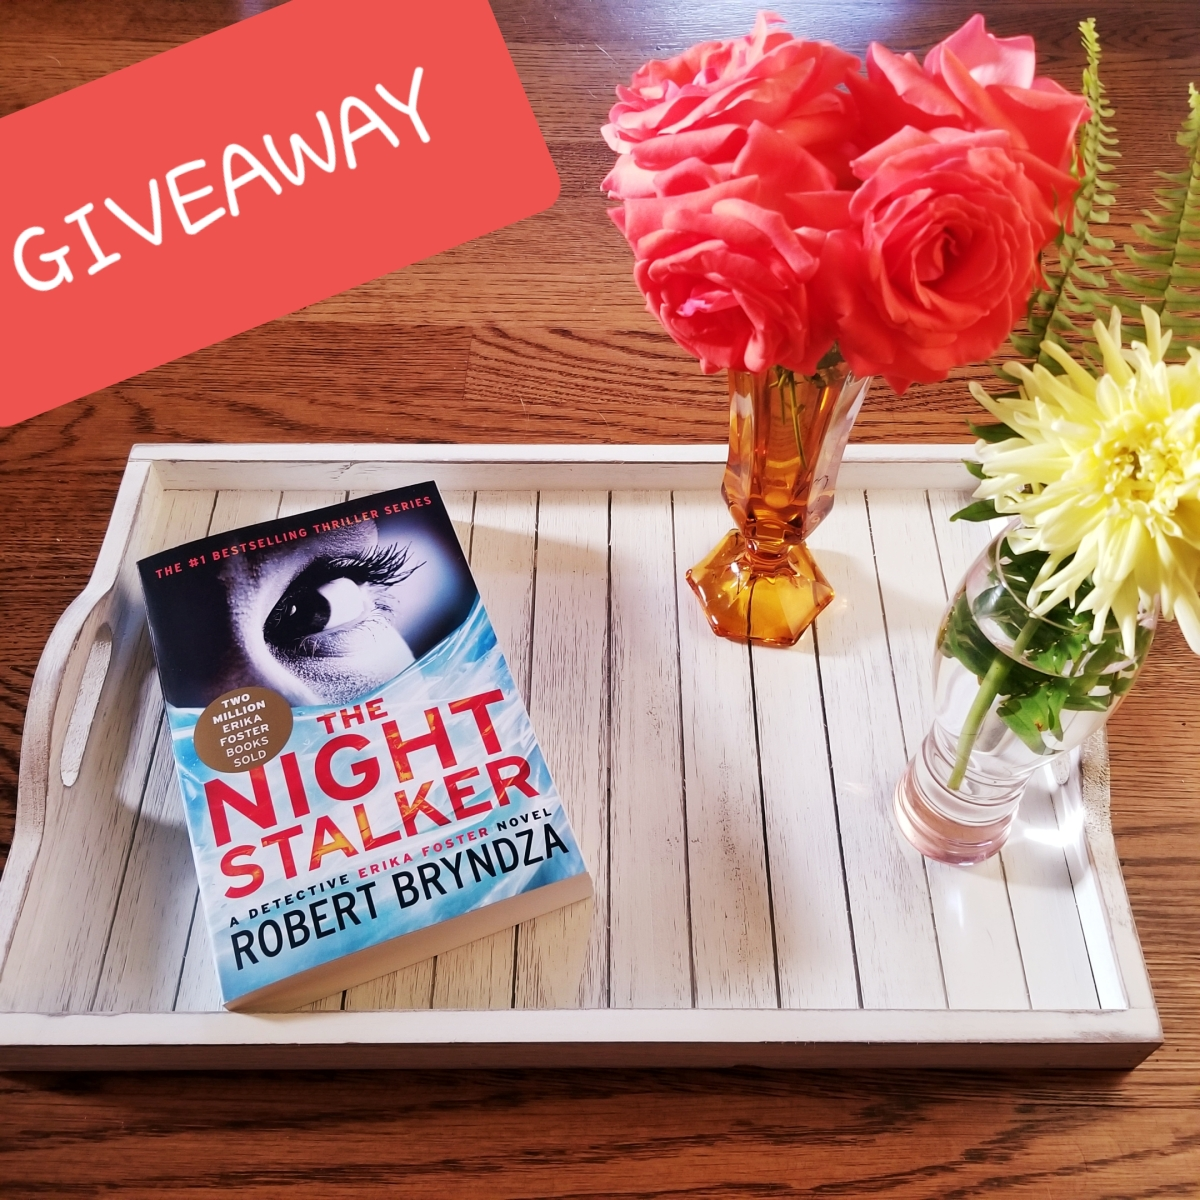 Night Stalker by Robert Bryndza #bookreview #tarheelreader #thrnightstalker @robertbryndza @grandcentralpub #nightstalker #bookgiveaway (two chances to win!)